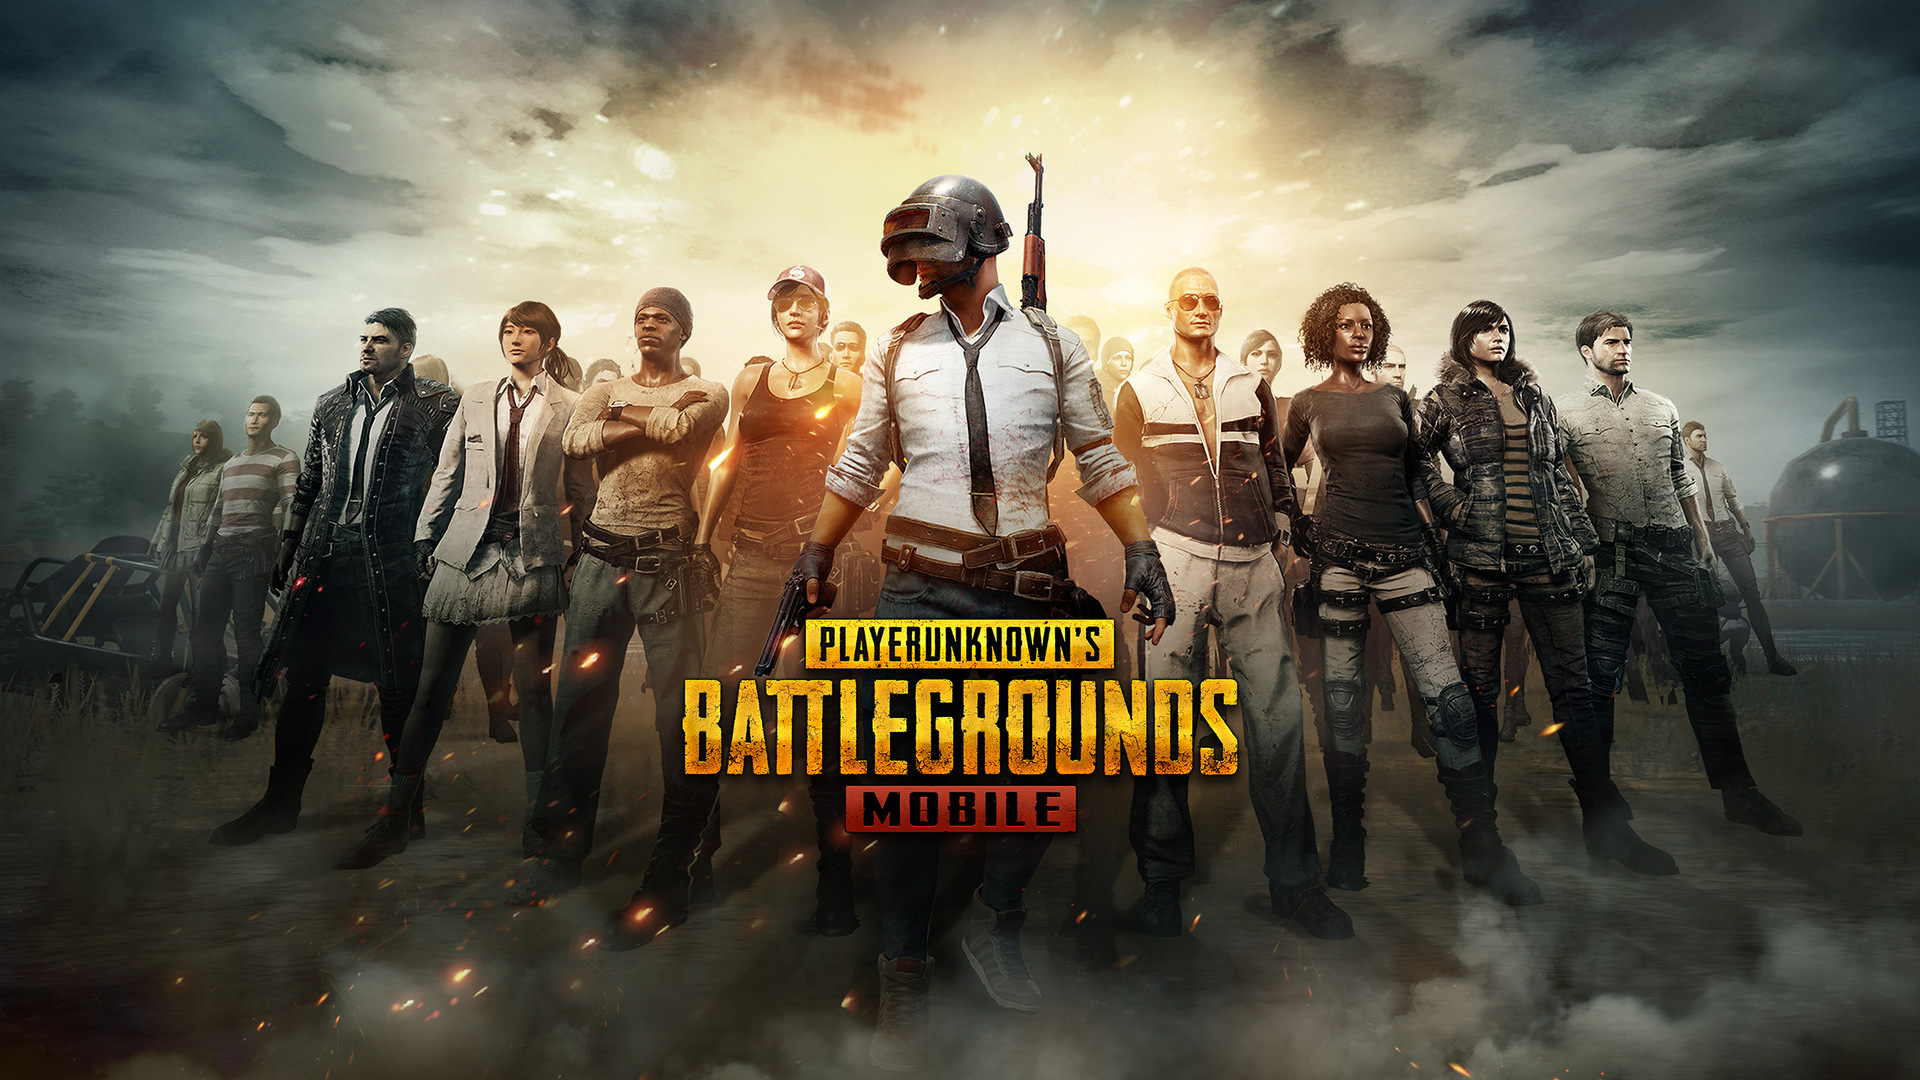 Pubg Mobile Hd Coming Soon: 1920x1080 Pubg Mobile Laptop Full HD 1080P HD 4k